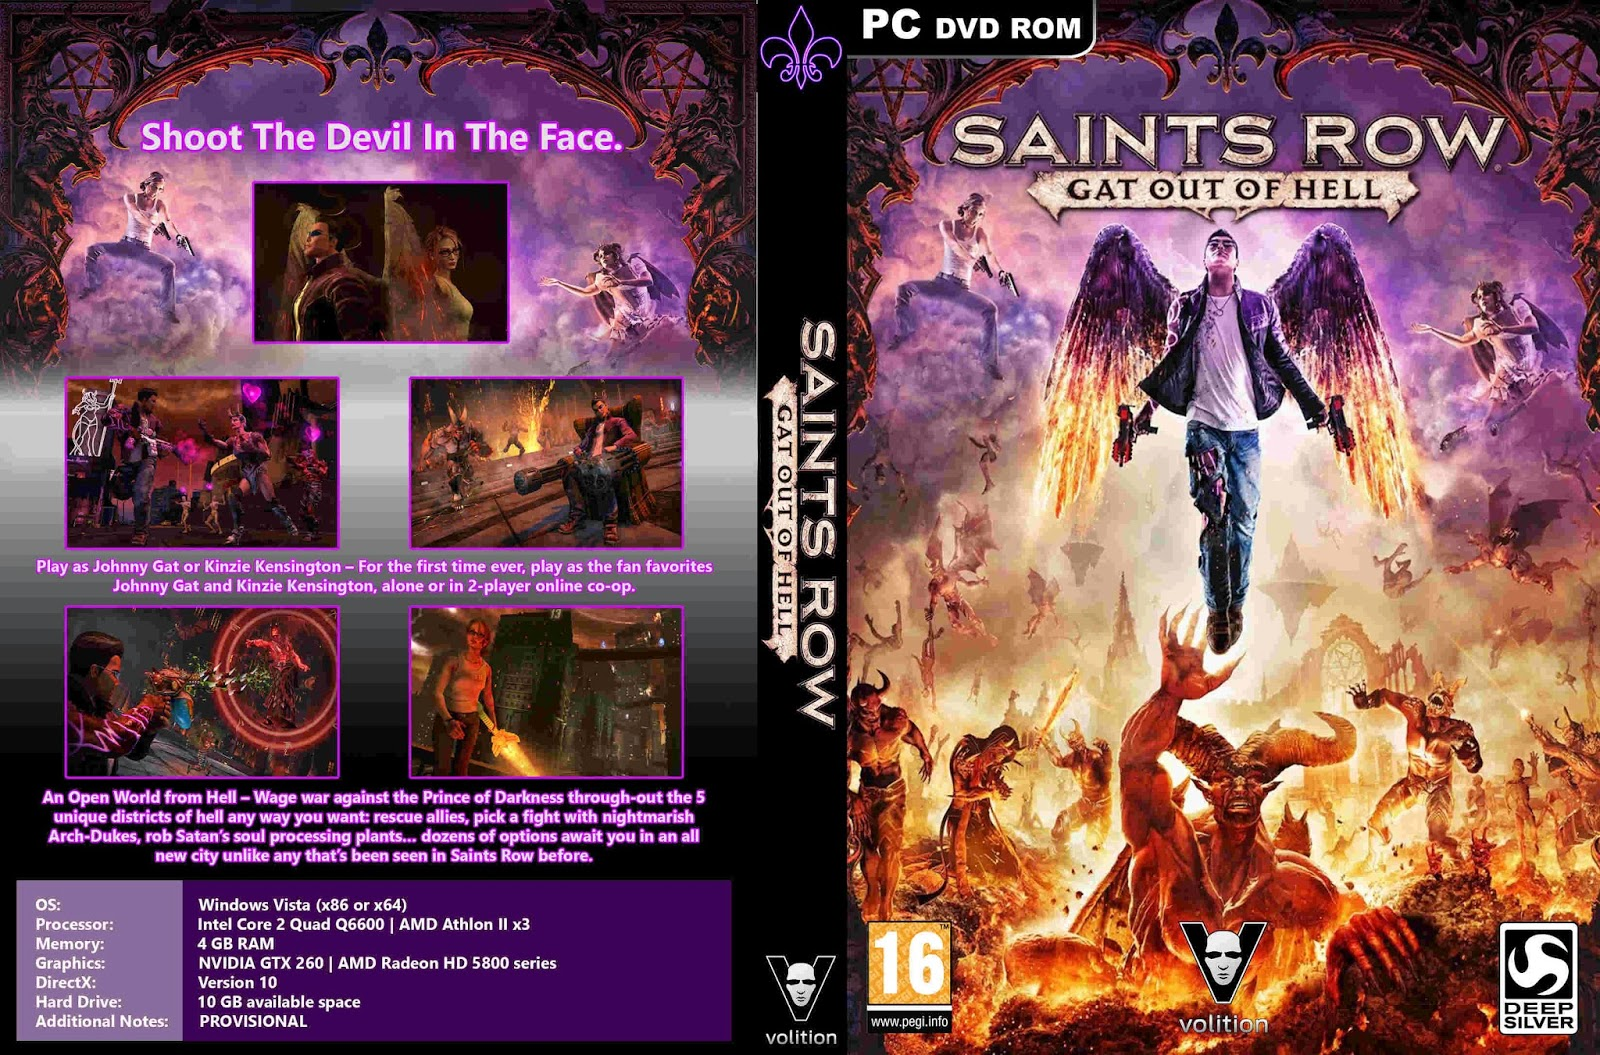 Download Saints Row Gat Out of Hell PC FULL Saints 2BRow 2BGat 2BOut 2BOf 2BHell 2B  2BCapa 2BPC 2BGame